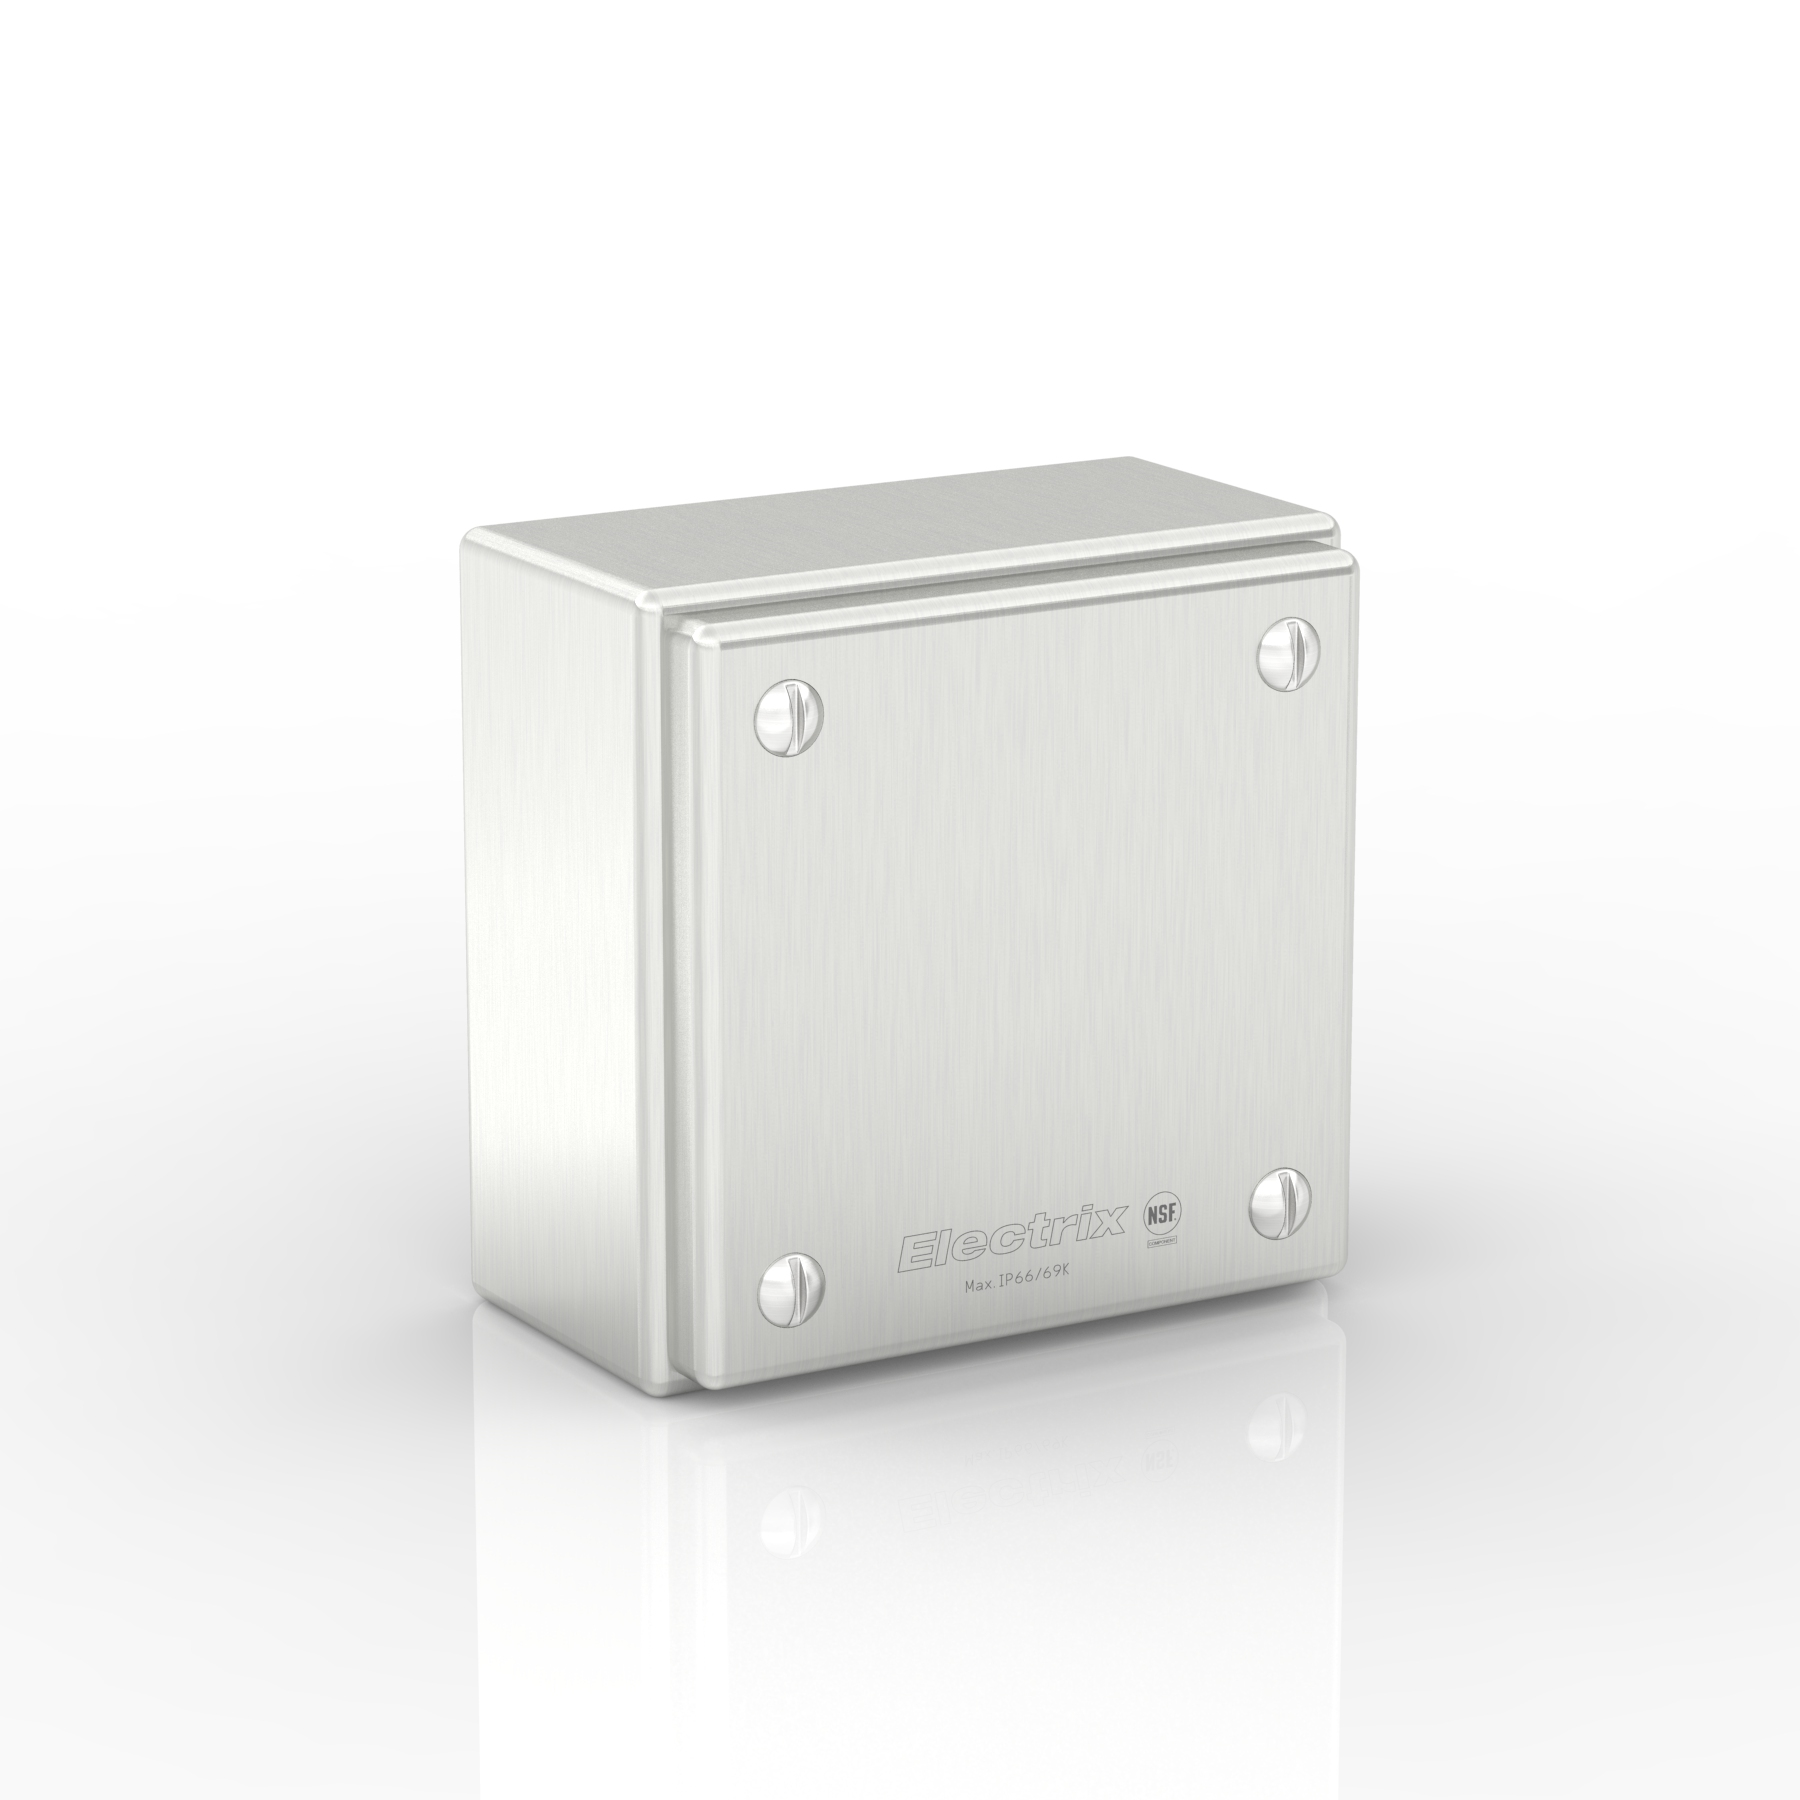 SL-XTCE10-S316 | WASHDOWNPRO IP69K / Type 4X Slimline Junction Box with Removable Stand-Off Mounting Pillars